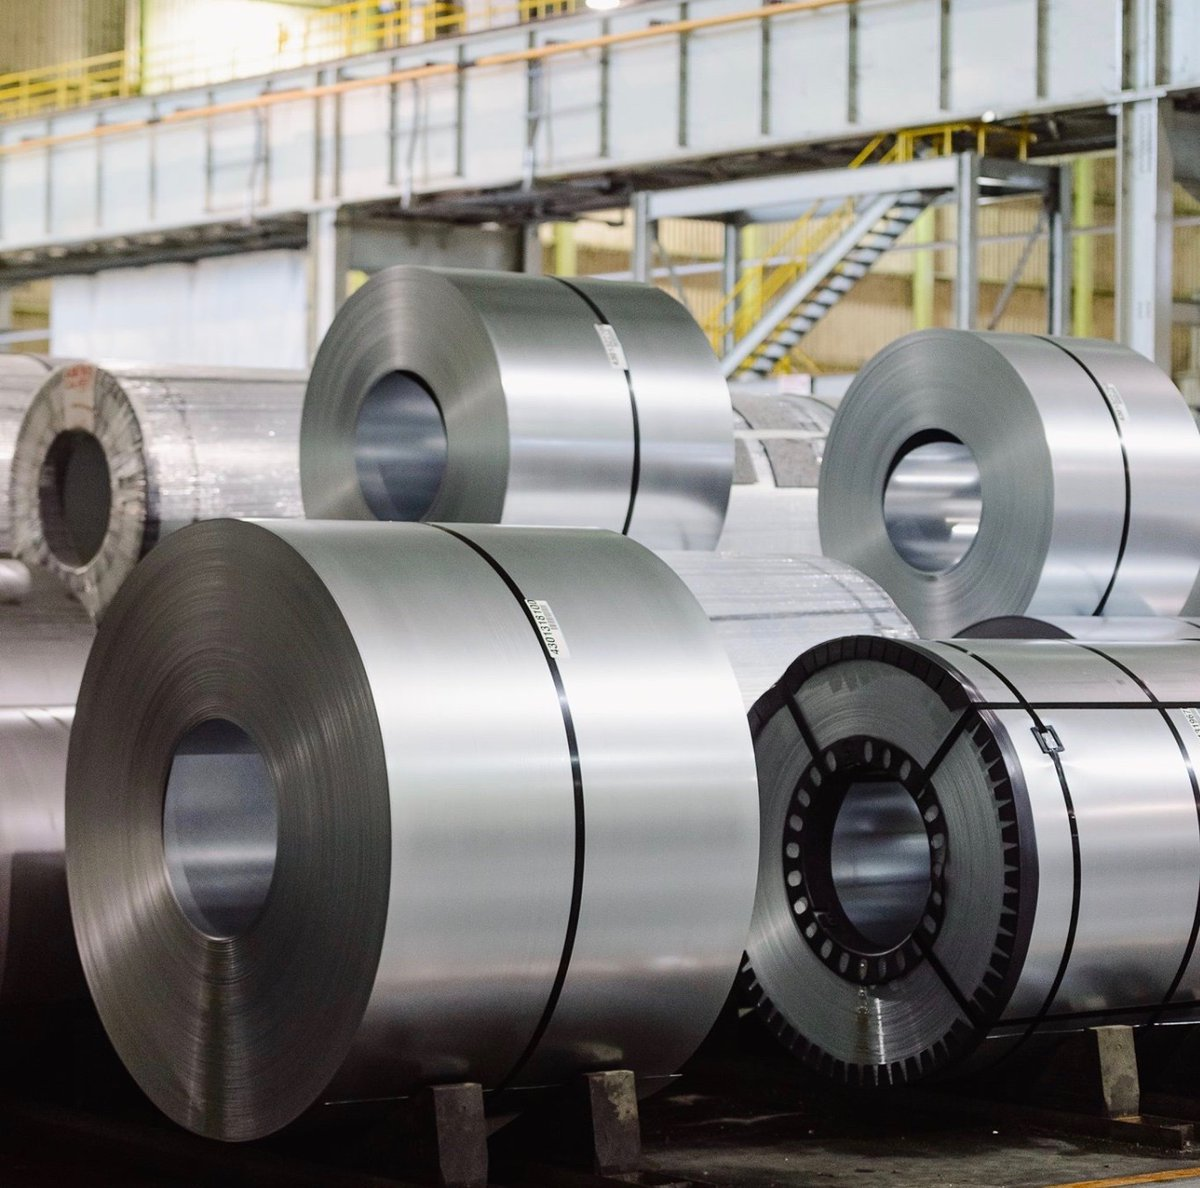 ICYMI: Steelmaker @ArcelorMittal announces major expansion plans at the AM/NS Calvert mill in Mobile County.  ✅New electric arc furnace ✅$500M investment ✅300 jobs in the community  ➡️